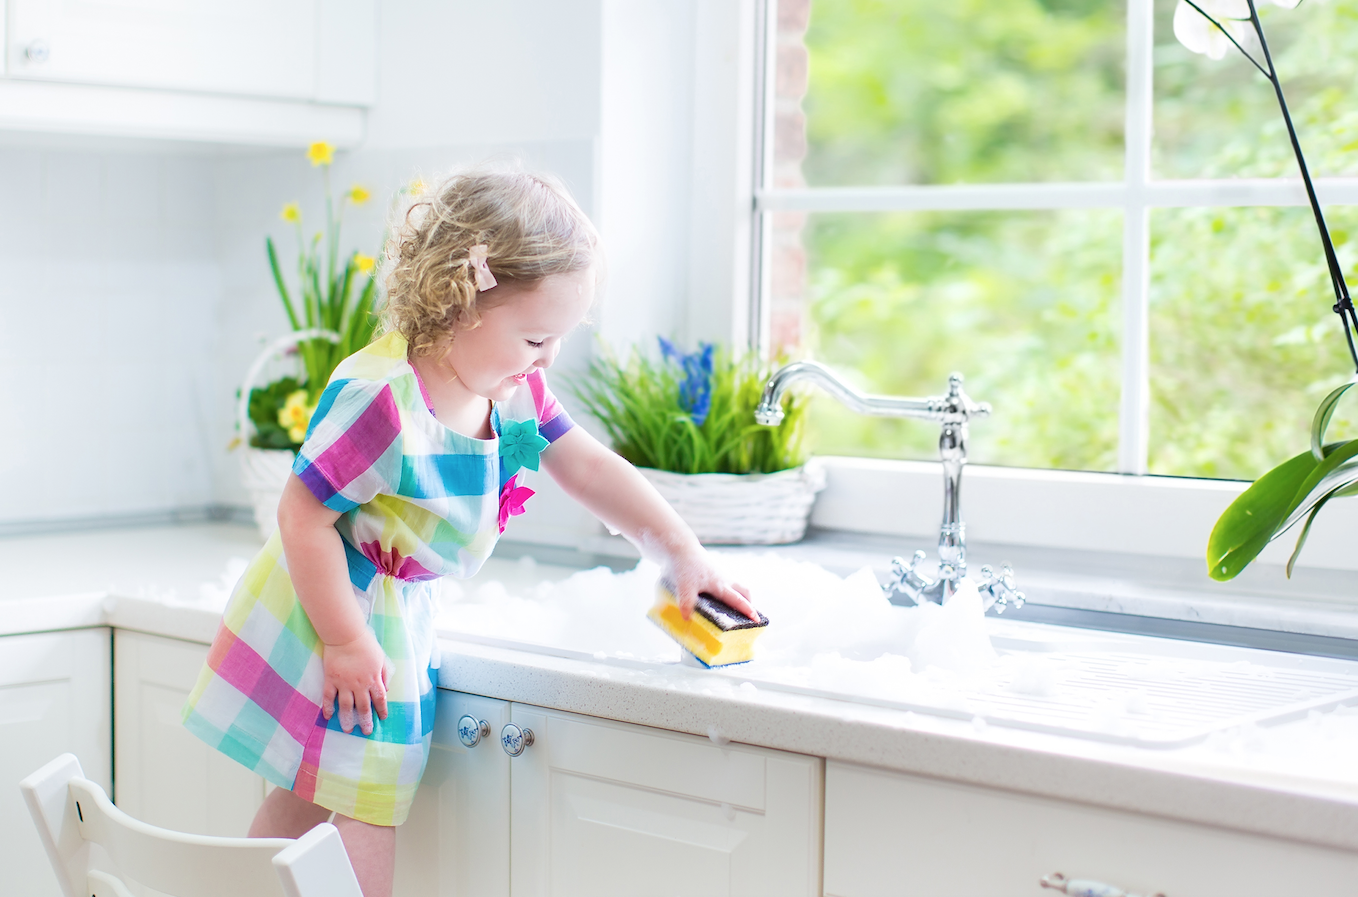 Our Top 8 Tips to Prepare Your Home for Summer